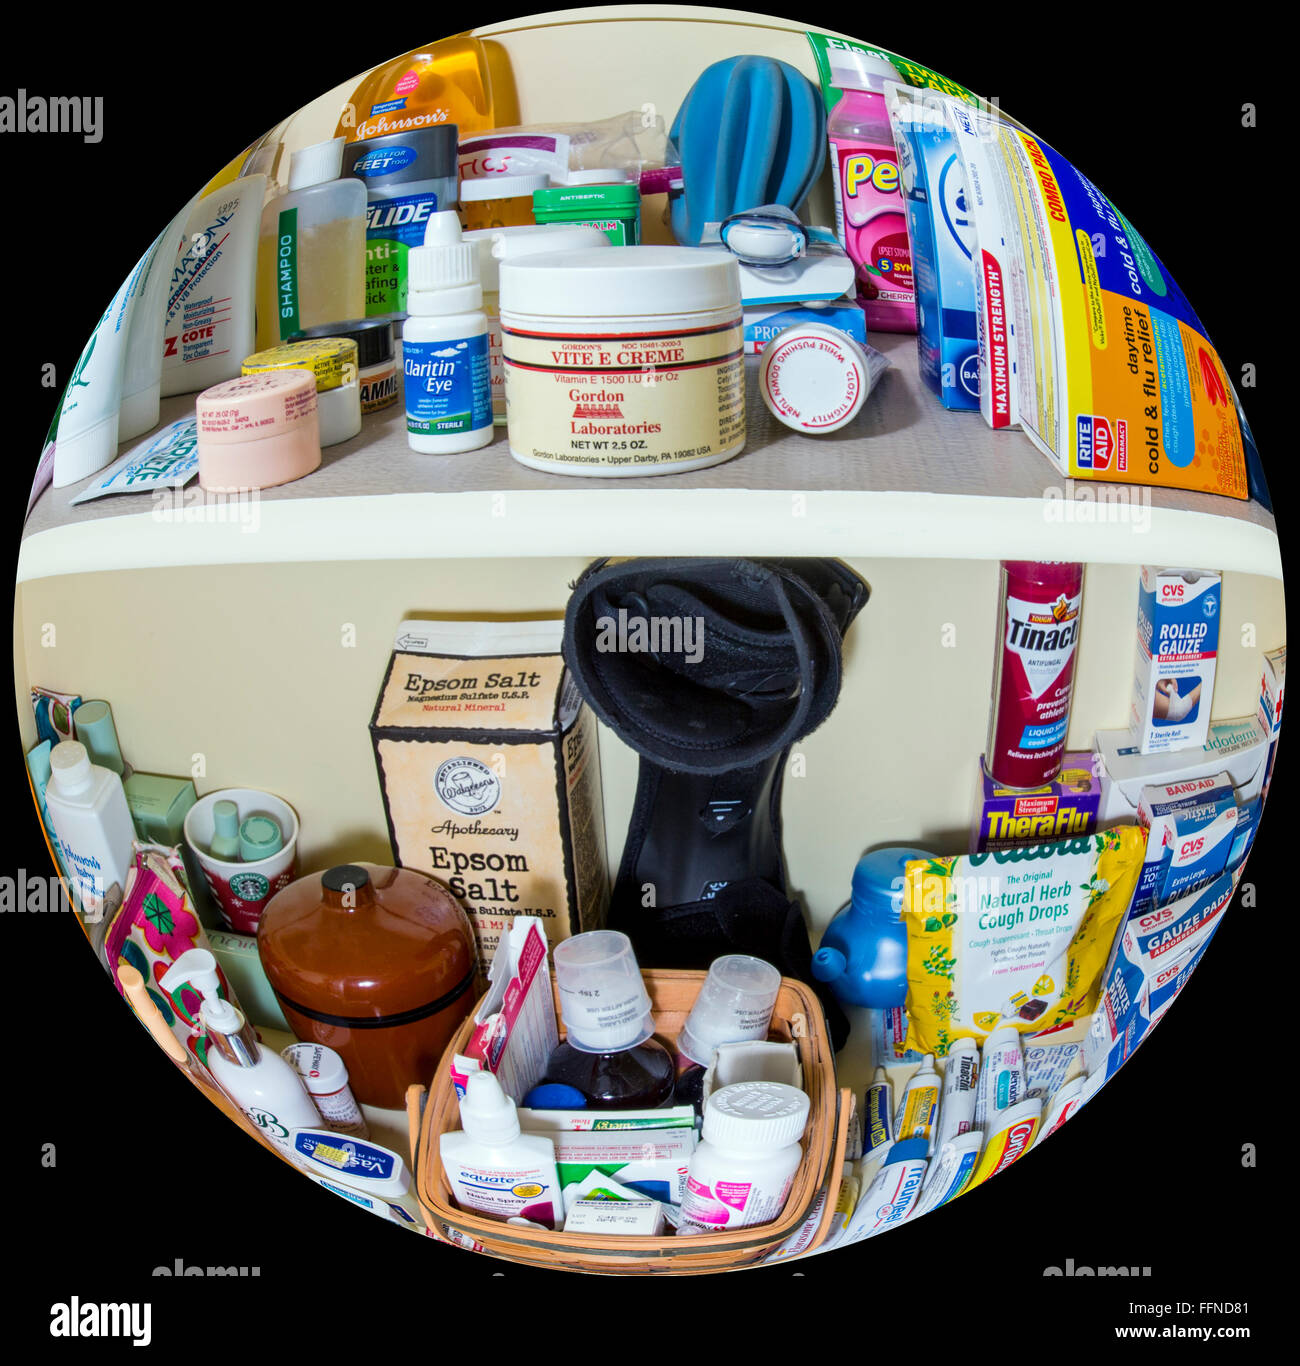 Fisheye view of home medicine cabinet shelves full of pharmaceuticals, drugs, balms, bandages, ointments and personals - Stock Image